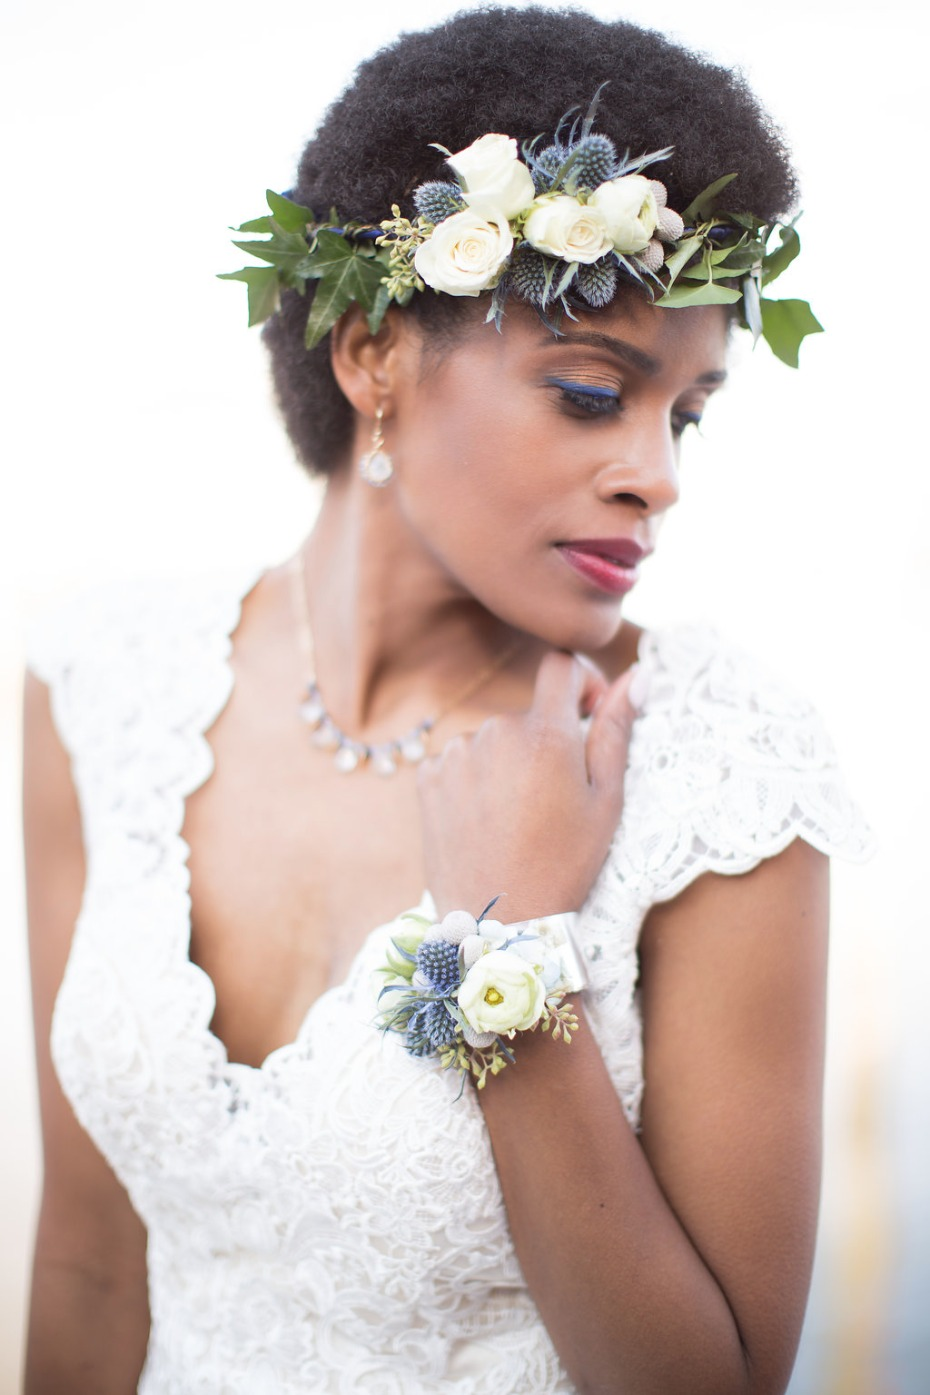 Beautiful flower crown and corsage